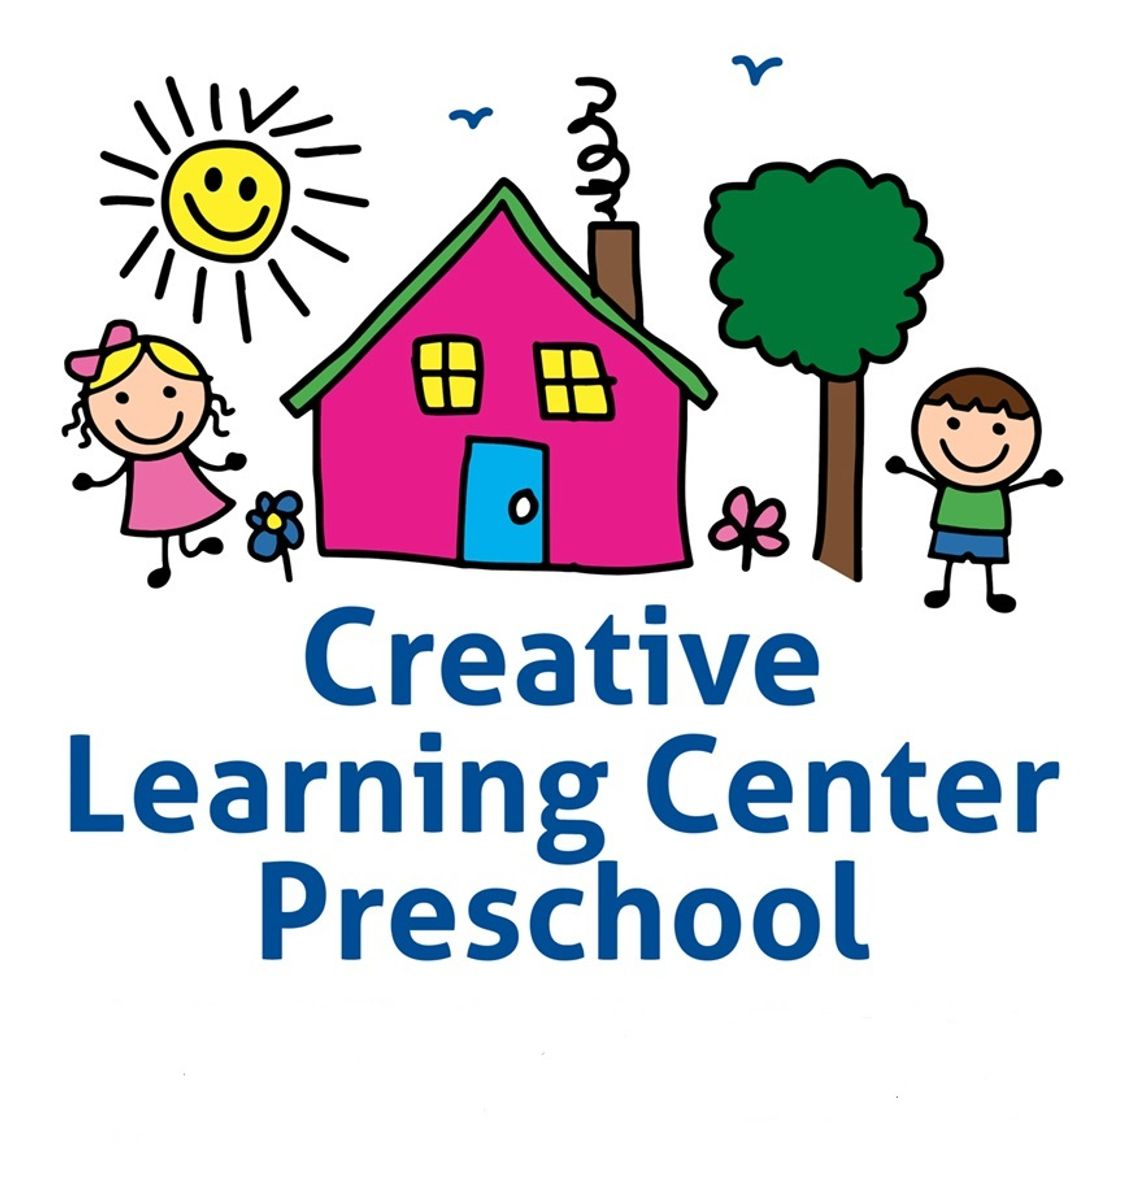 Creative Learning Center Photo #1 - Creative Learning Center Preschool creating lasting impressions for God.